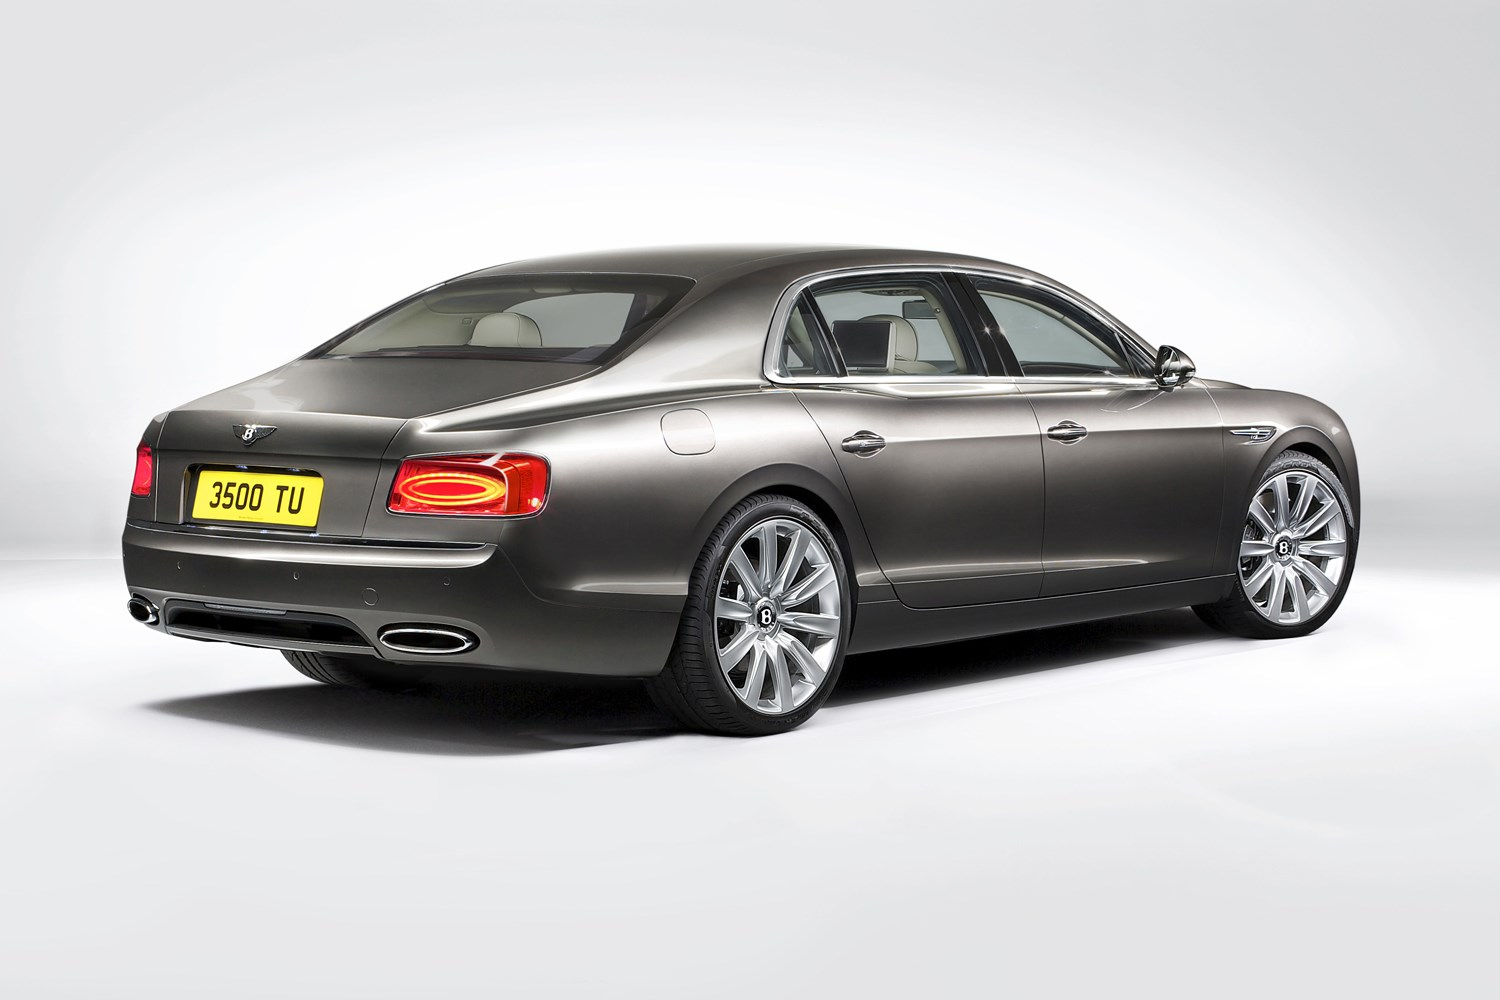 bentley flying spur saloon review 2013 parkers